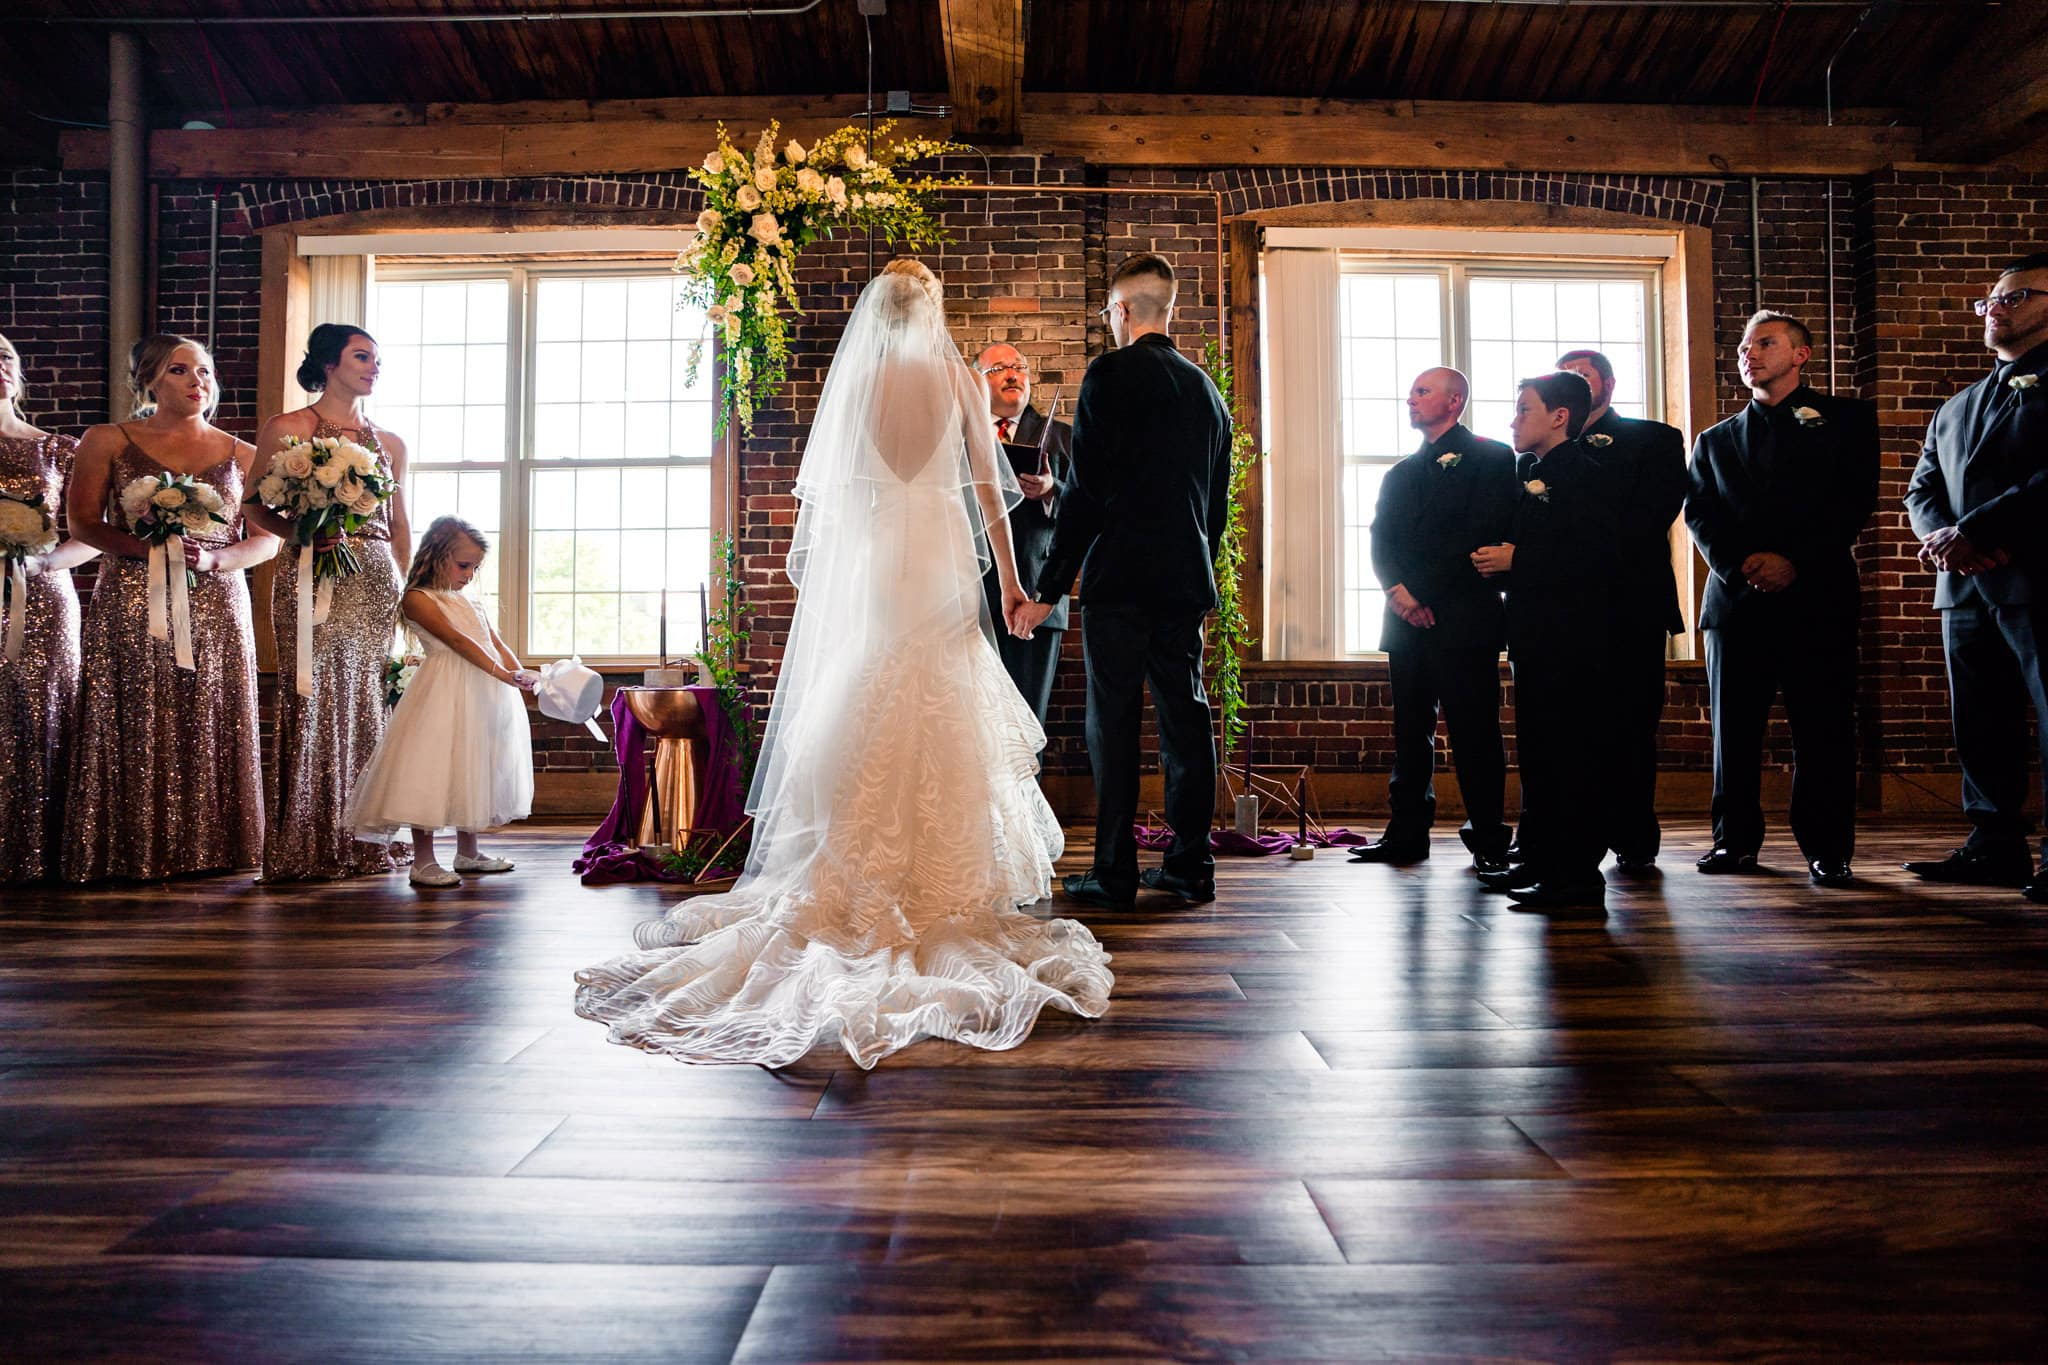 Top of the Market Wedding Photos - Wedding Venues in Dayton